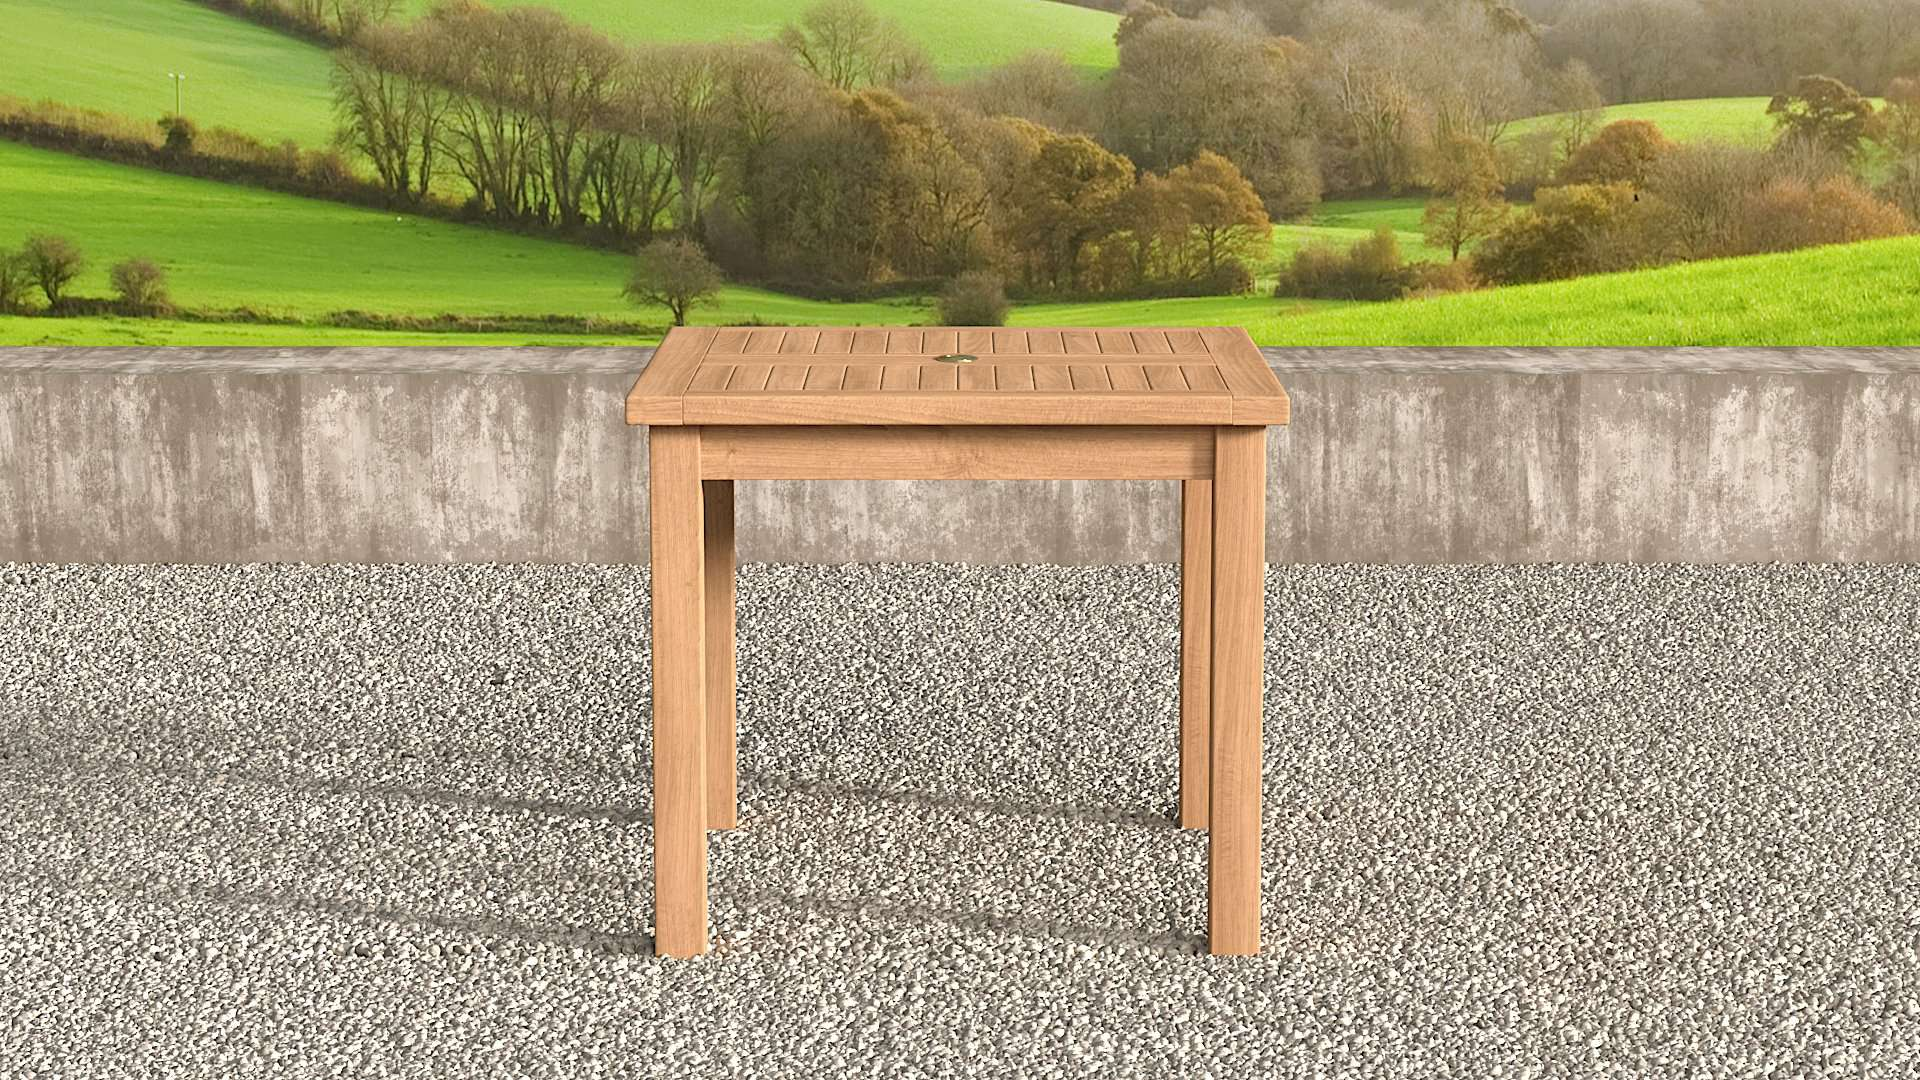 Square Garden Teak Table 100cm (4 Seater)  - Chic Teak® | Luxury Teak Furniture